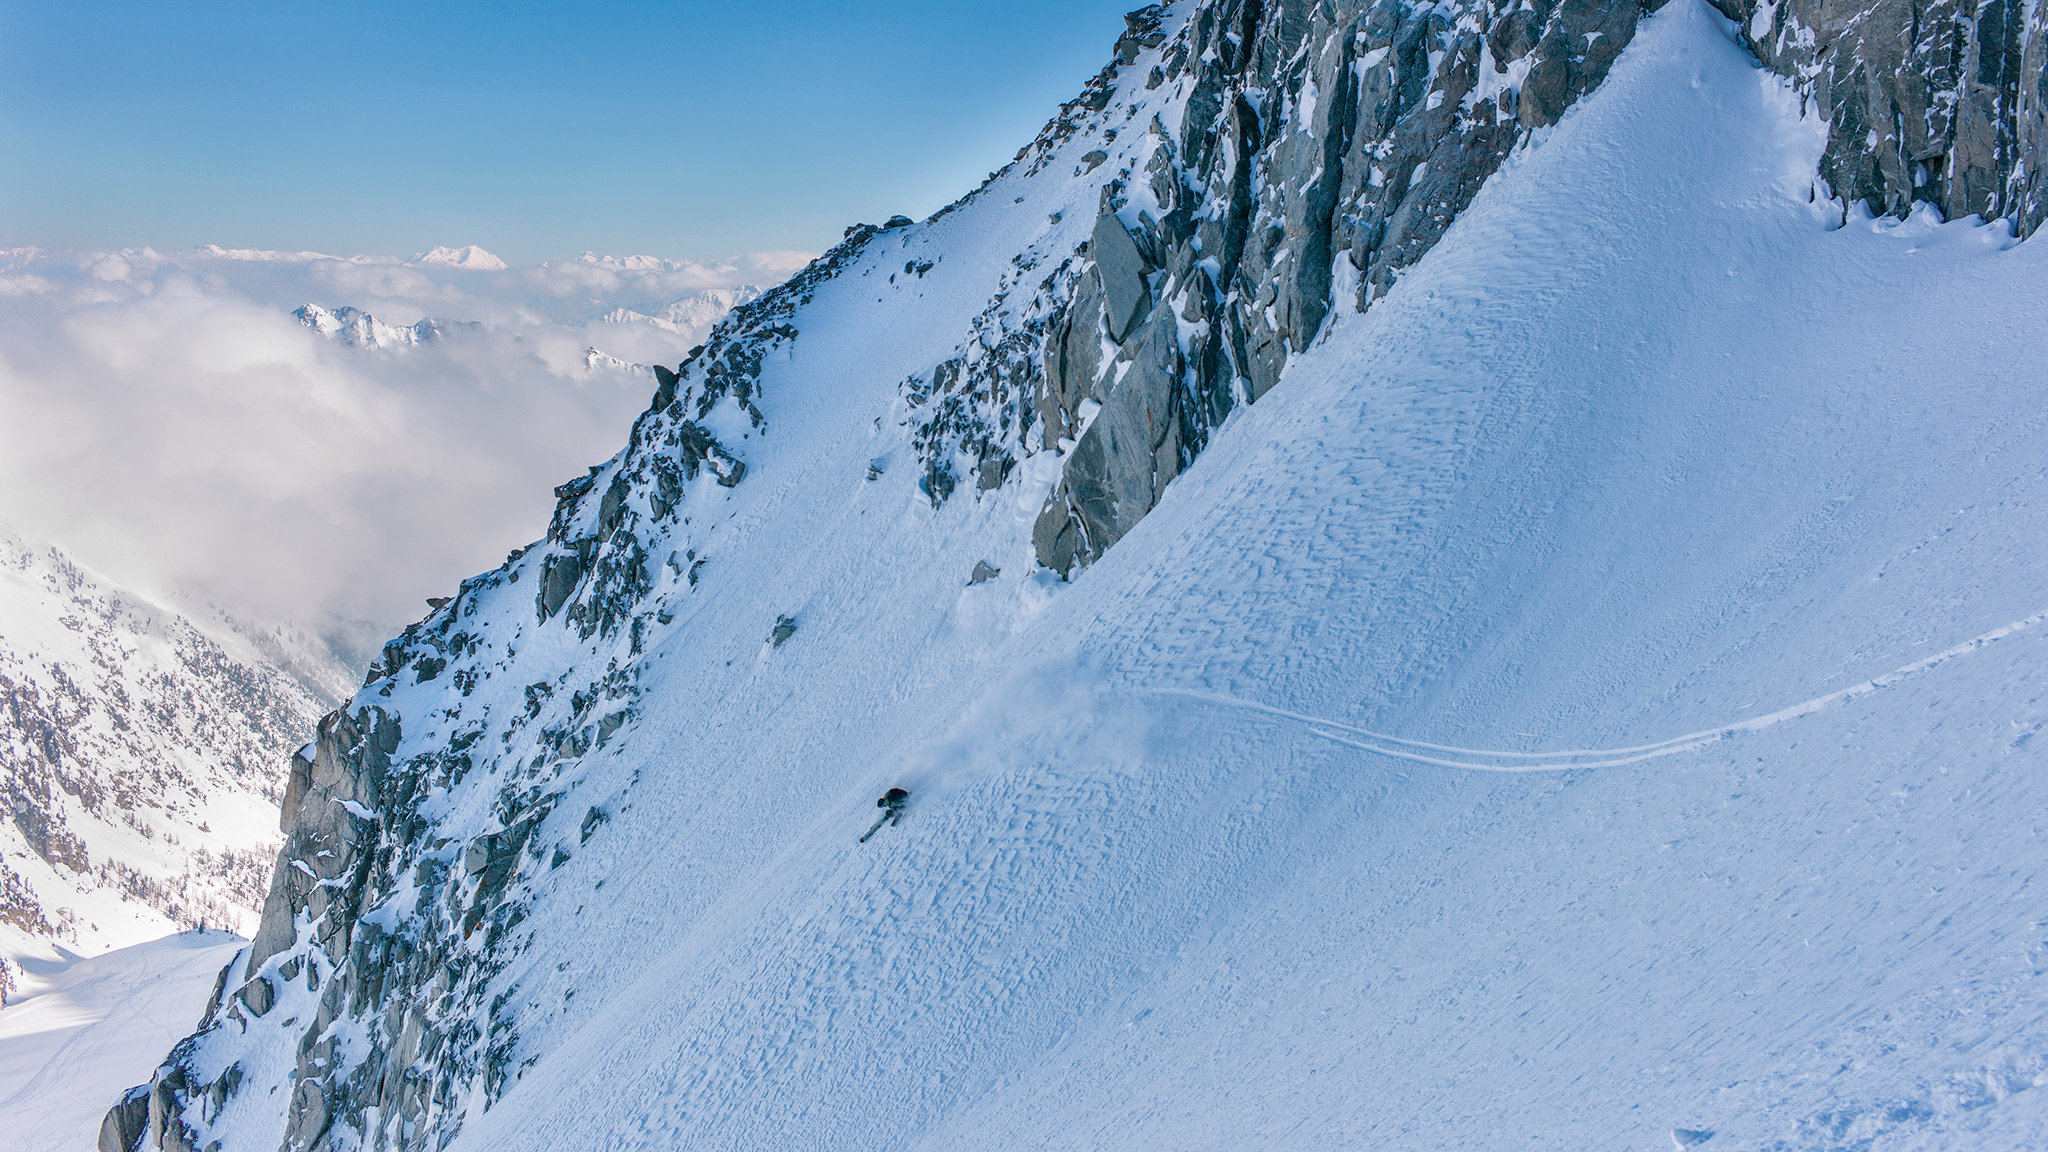 JP Auclair, pictured here skiing a line in Zermatt, Switzerland, in 2013, died in an avalanche in Chile on Monday.